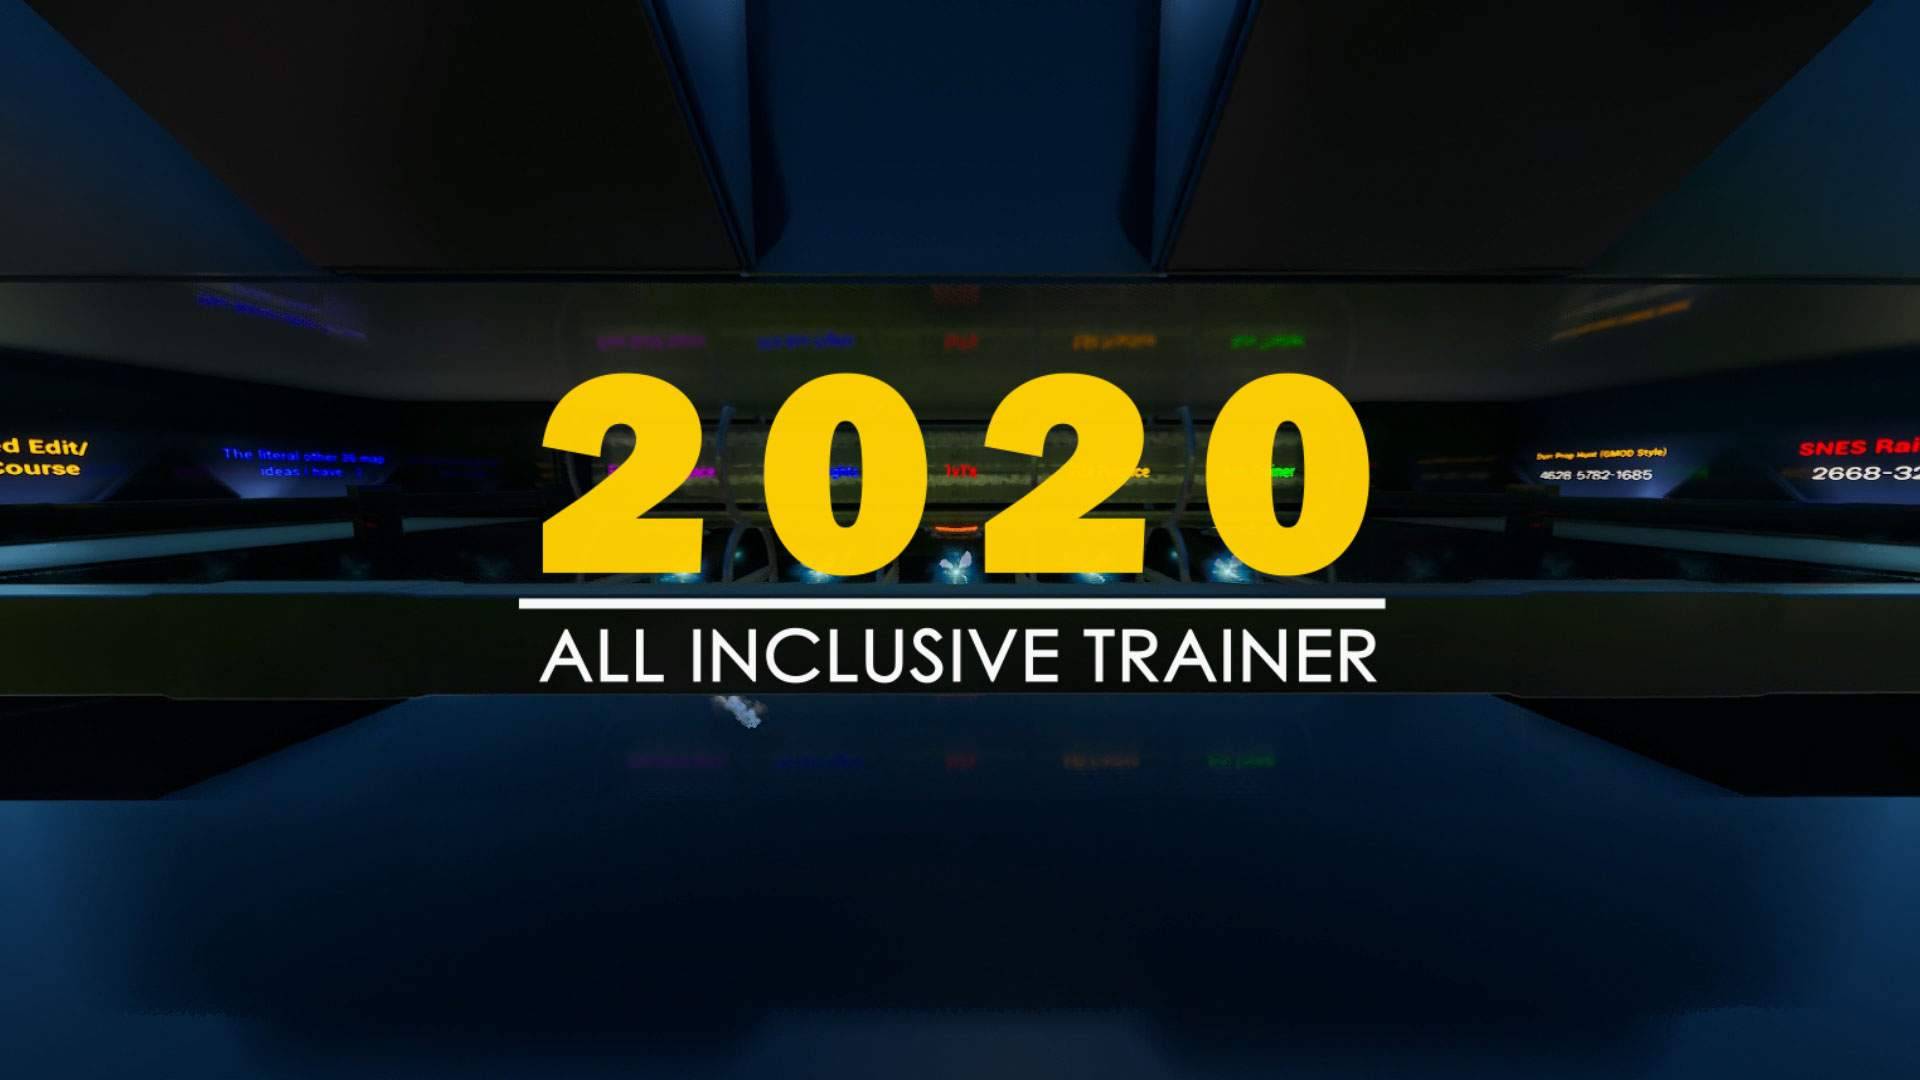 2020 ALL INCLUSIVE TRAINER